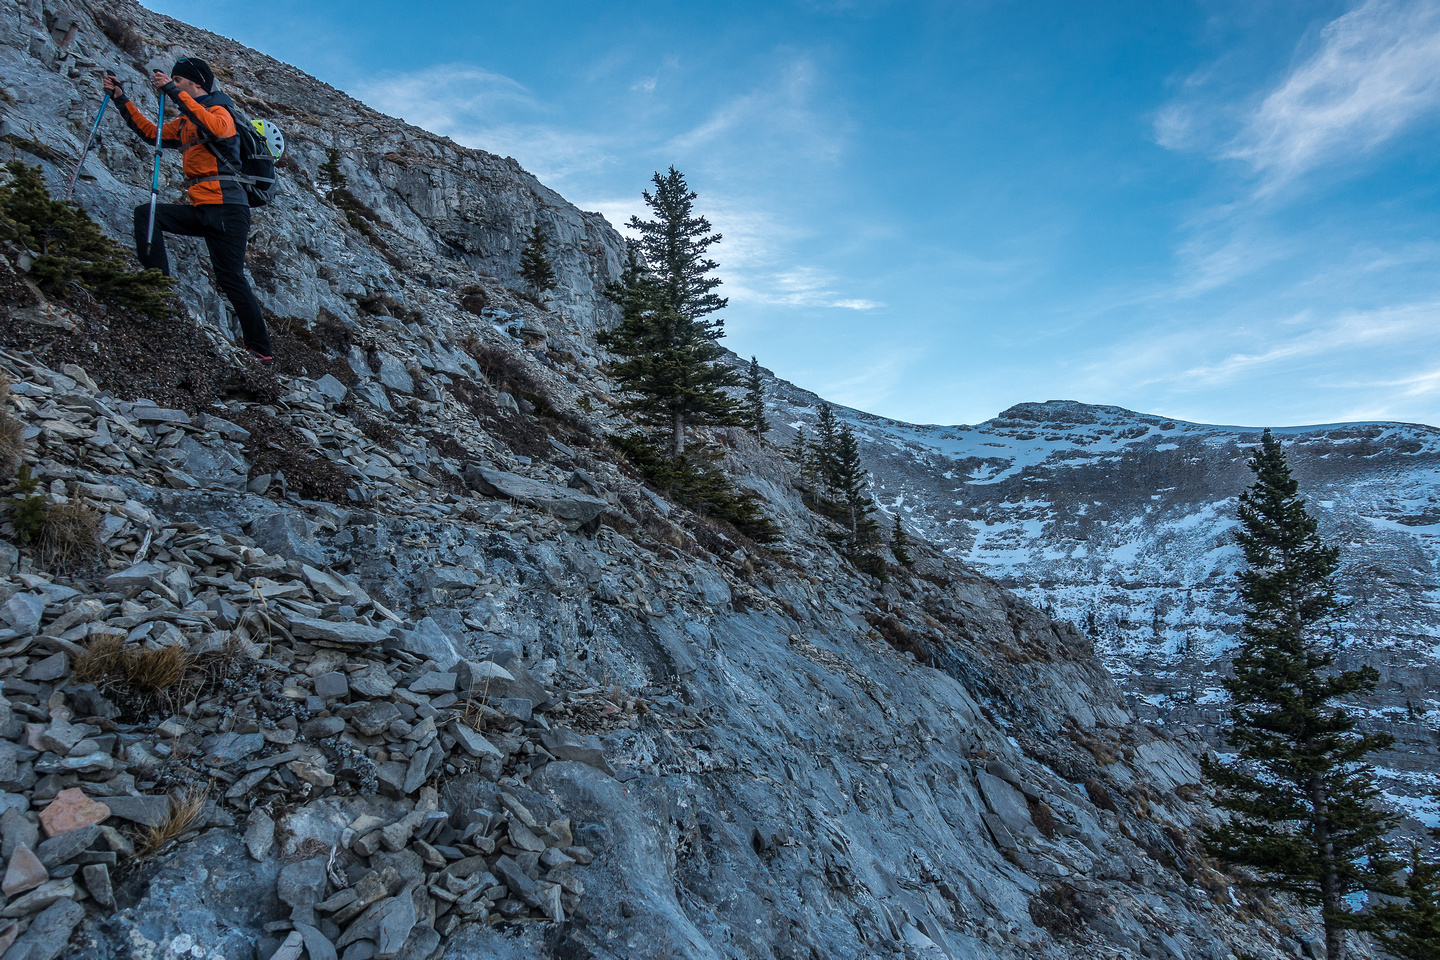 We got lucky by avoiding any difficult terrain either above or below us as we traversed back to the west (L) before finding the scree slope leading up to the south ridge.